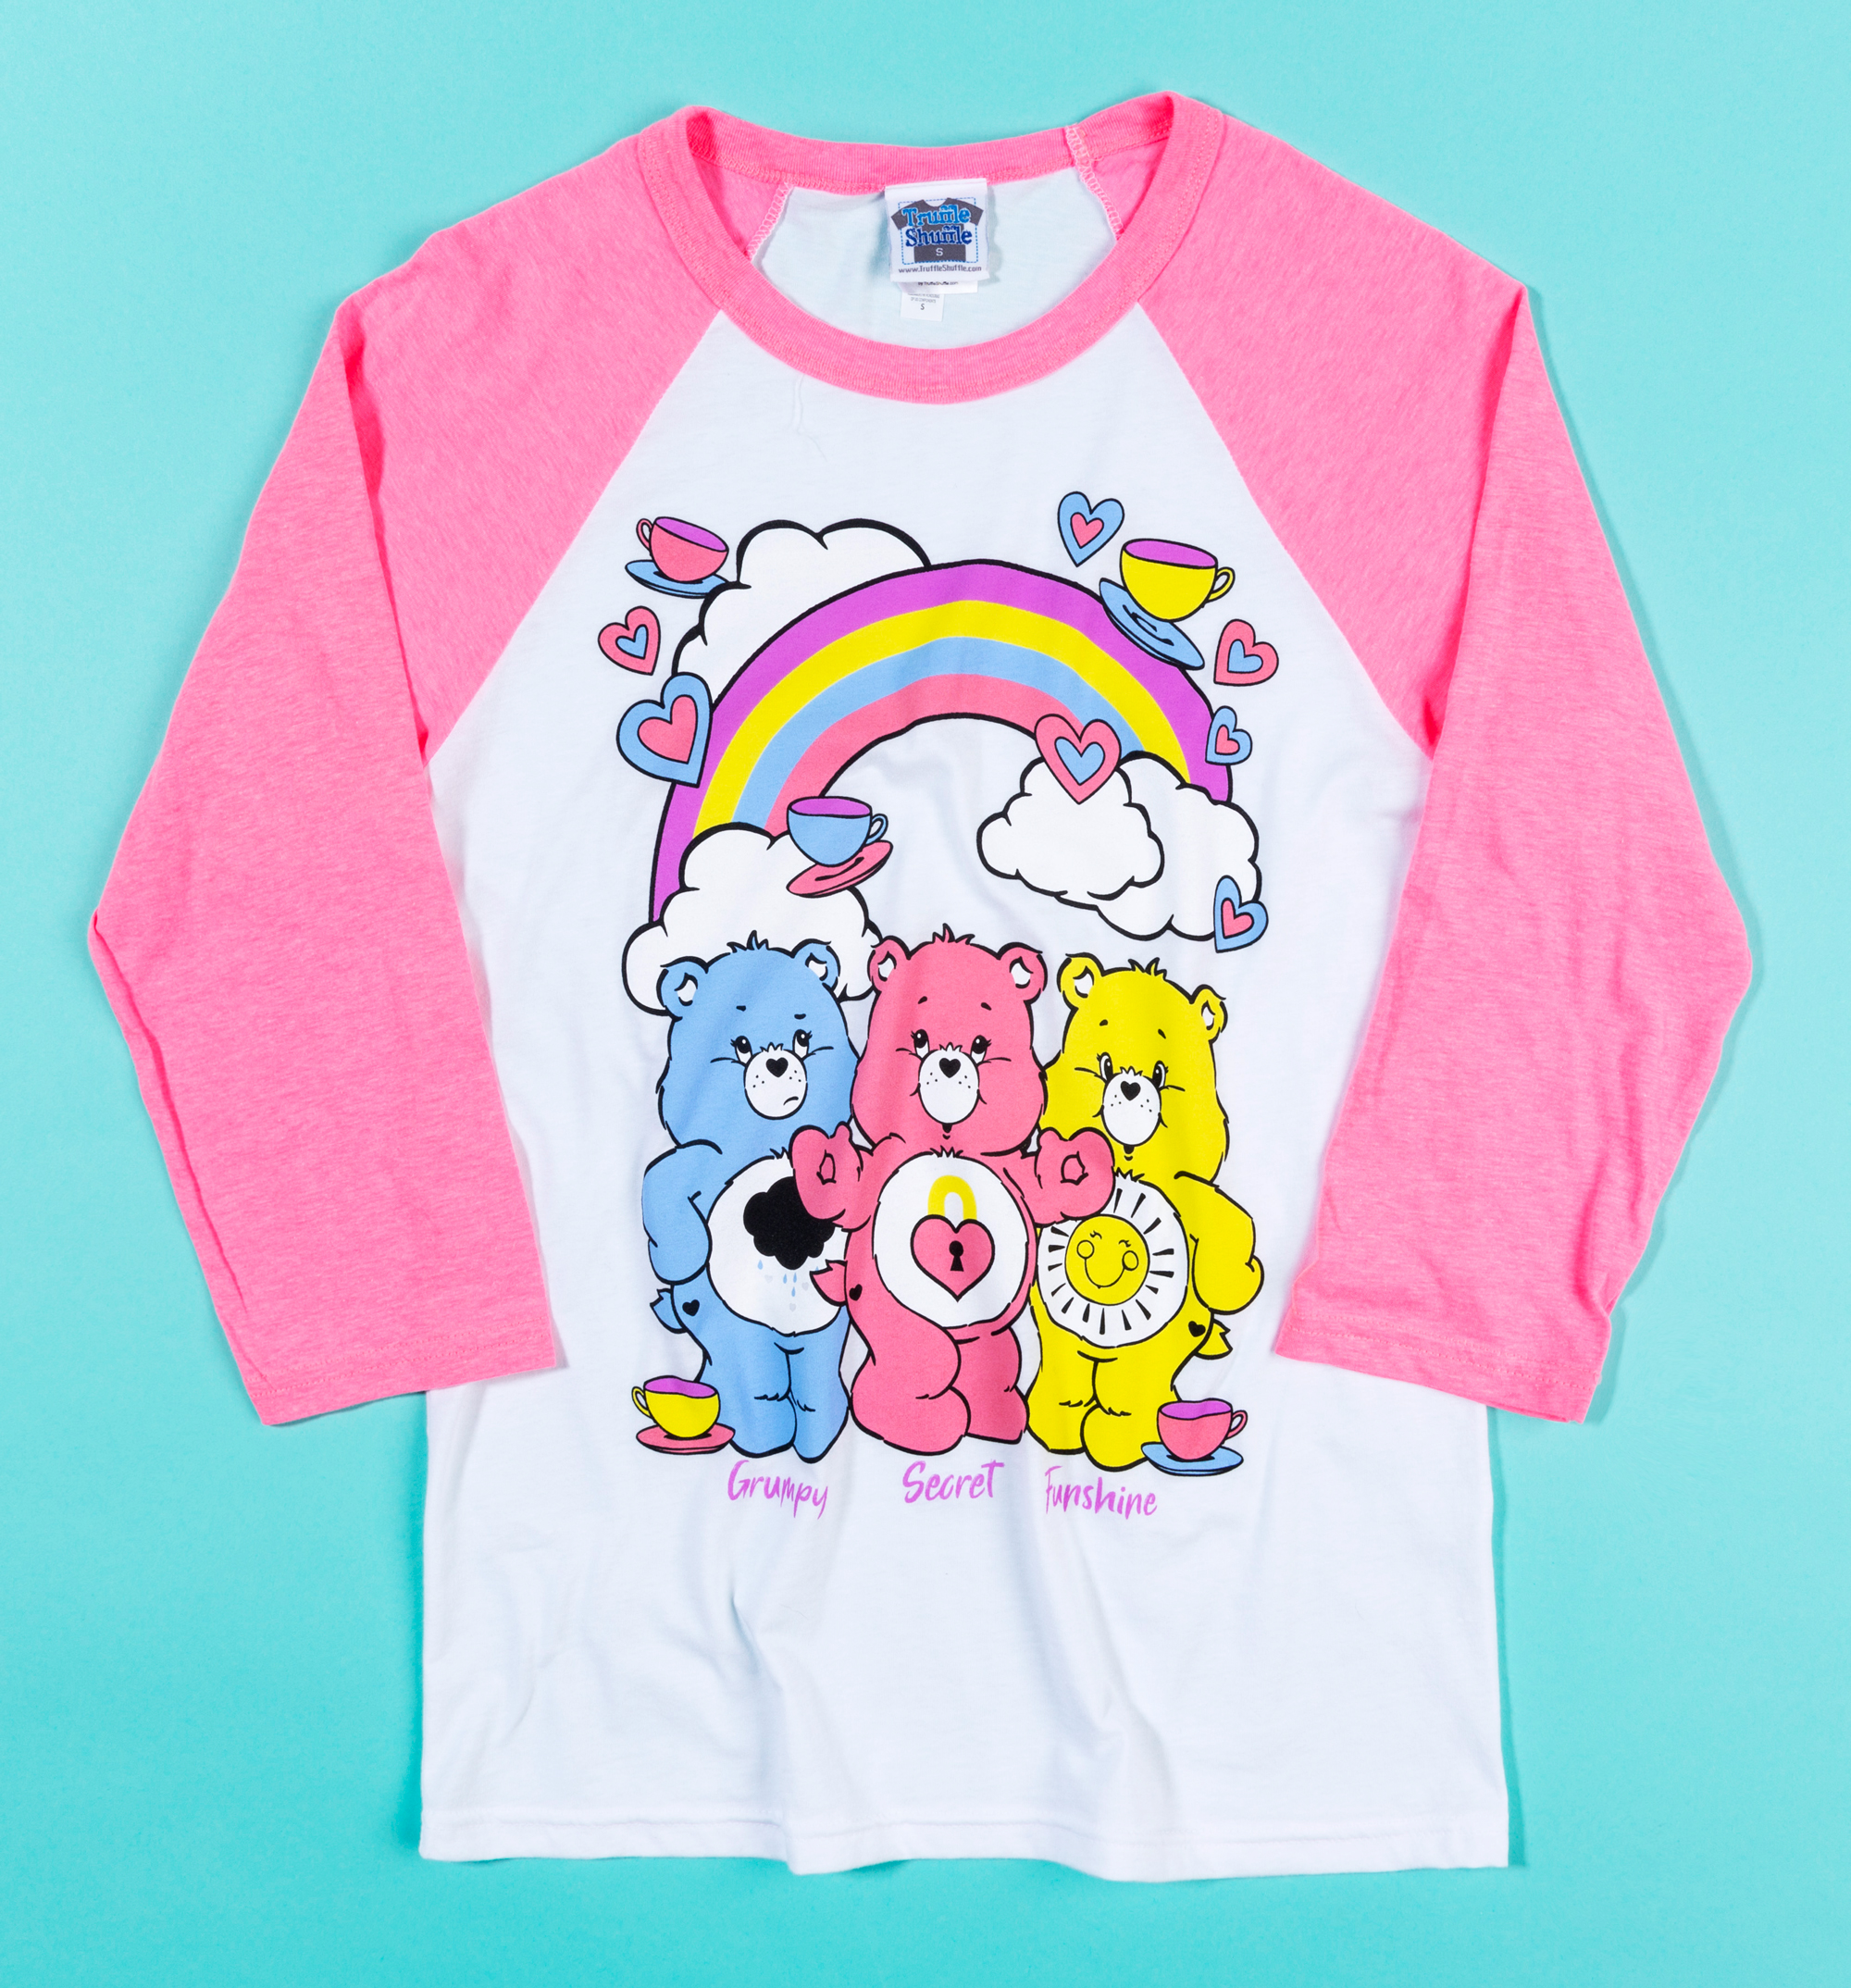 0102cfbaab4 Women's Care Bears Hearts and Tea Cups Baseball T-Shirt - Designed in  collaboration with Sarah Louise Porter - Includes a limited edition Care  Bears enamel ...